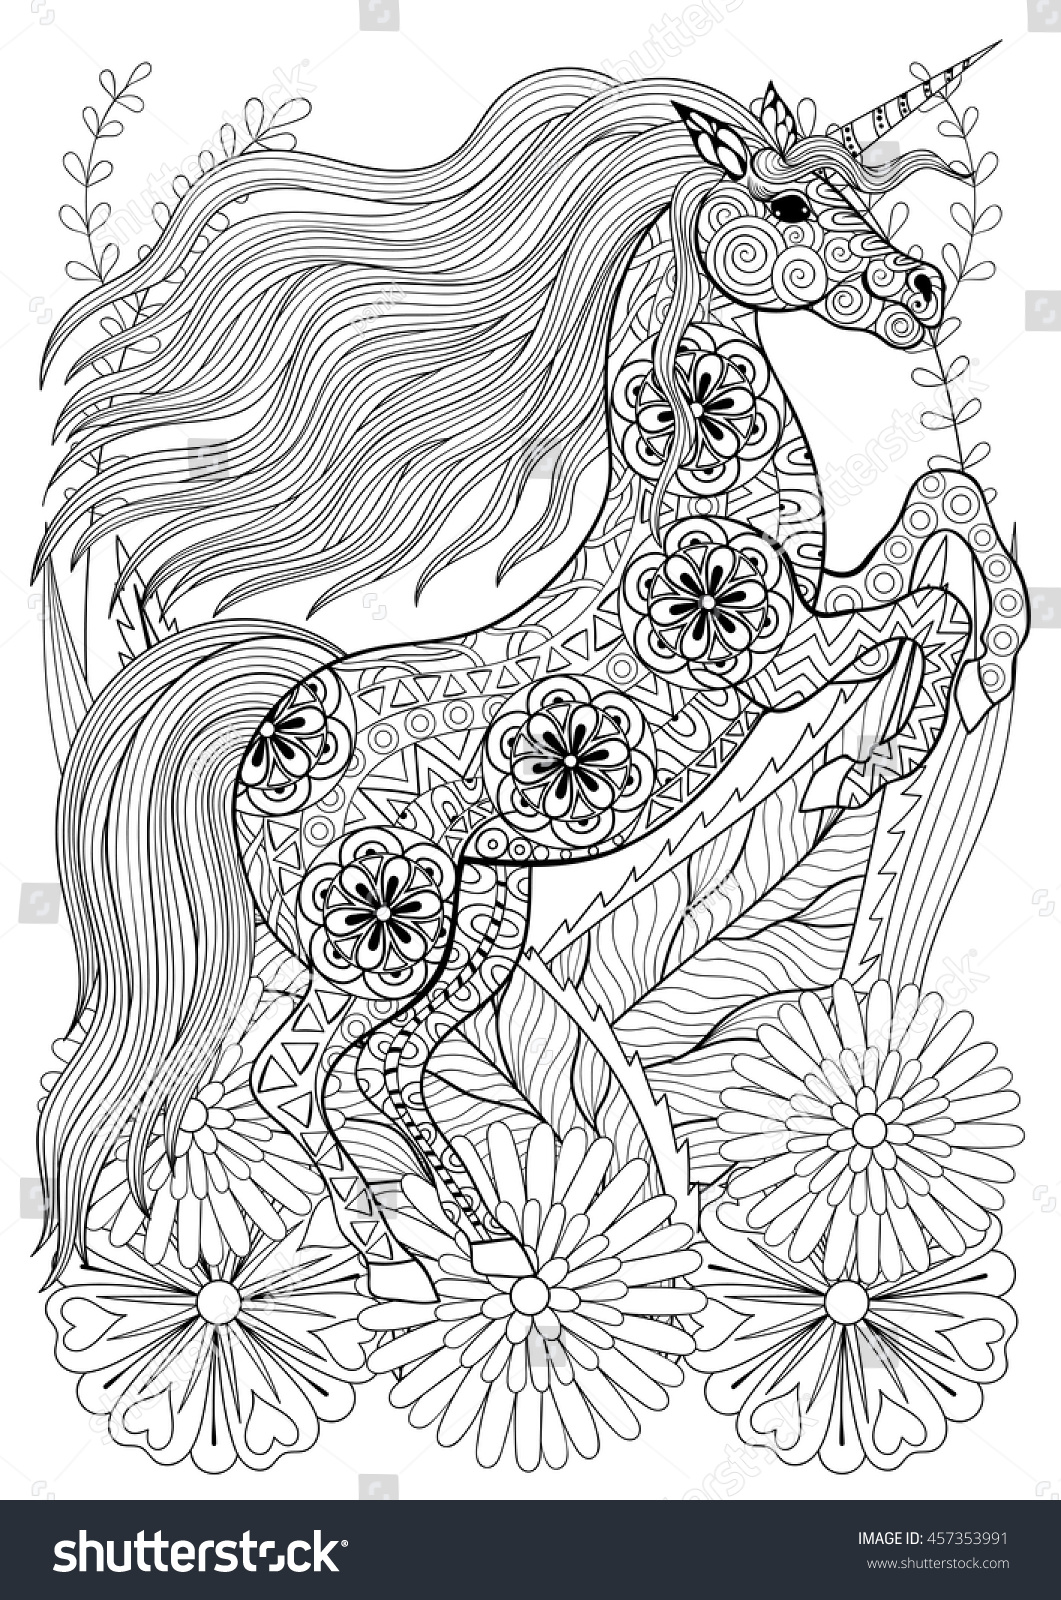 zentangle stylized unicorn flowers hand drawn stock vector 457353991 shutterstock. Black Bedroom Furniture Sets. Home Design Ideas